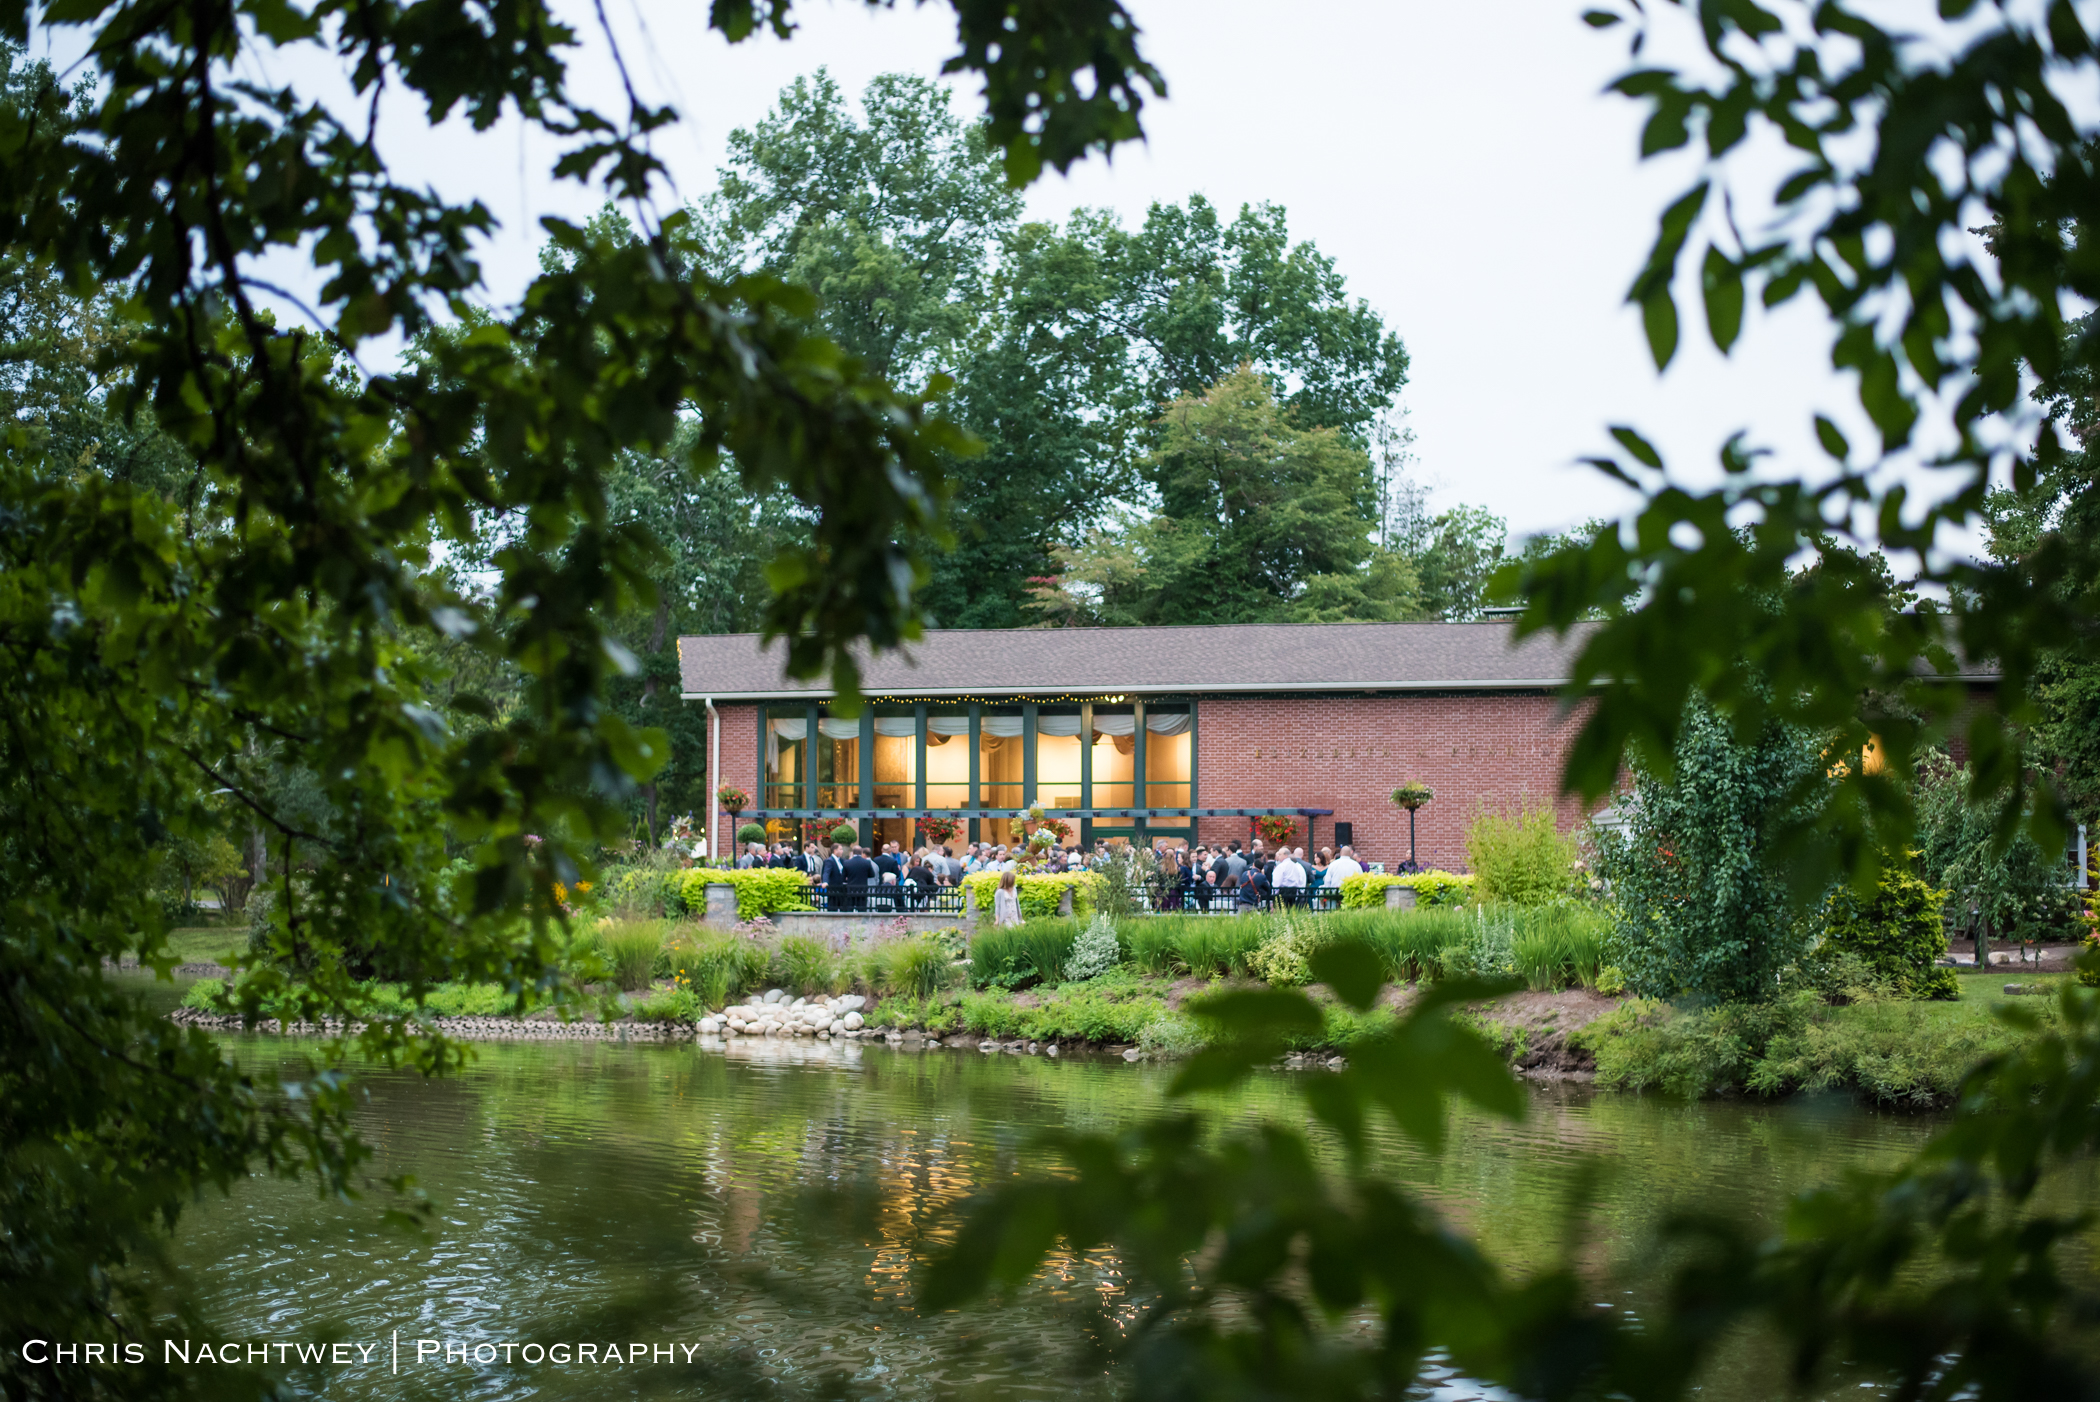 pond-house-cafe-wedding-hartford-ct-photos-chris-nachtwey-photography-2017-jackie-matt-32.jpg